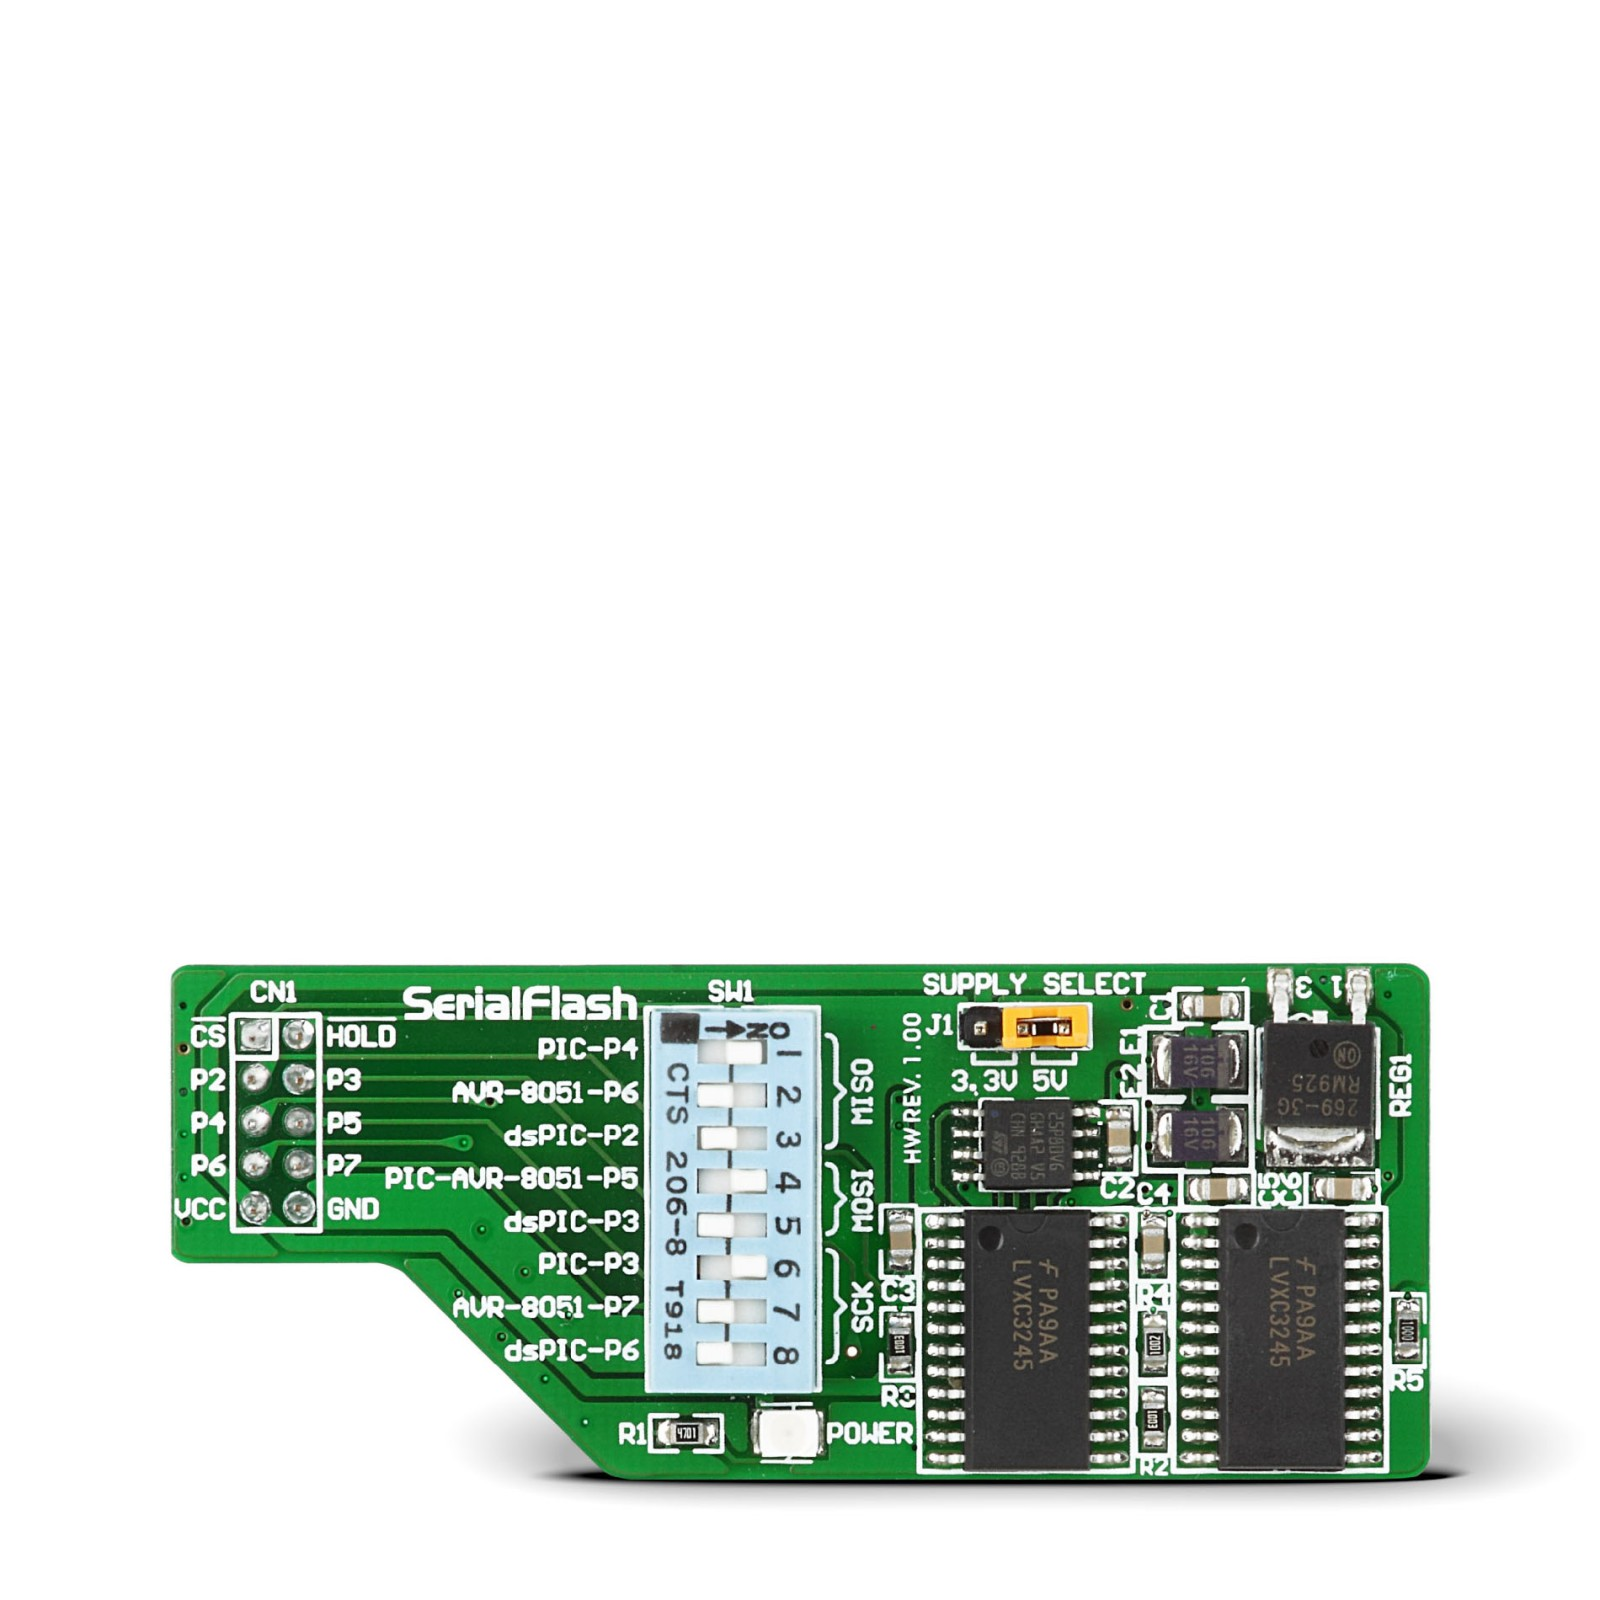 Atmel 8051 Flash Based Microcontroller Programmer Electronic Serialflash Add On Board With En25f80 8mbit Memory Mgctlbxnmzp Mgctlbxv5112 Mgctlbxlc Mgctlbxpprestashop